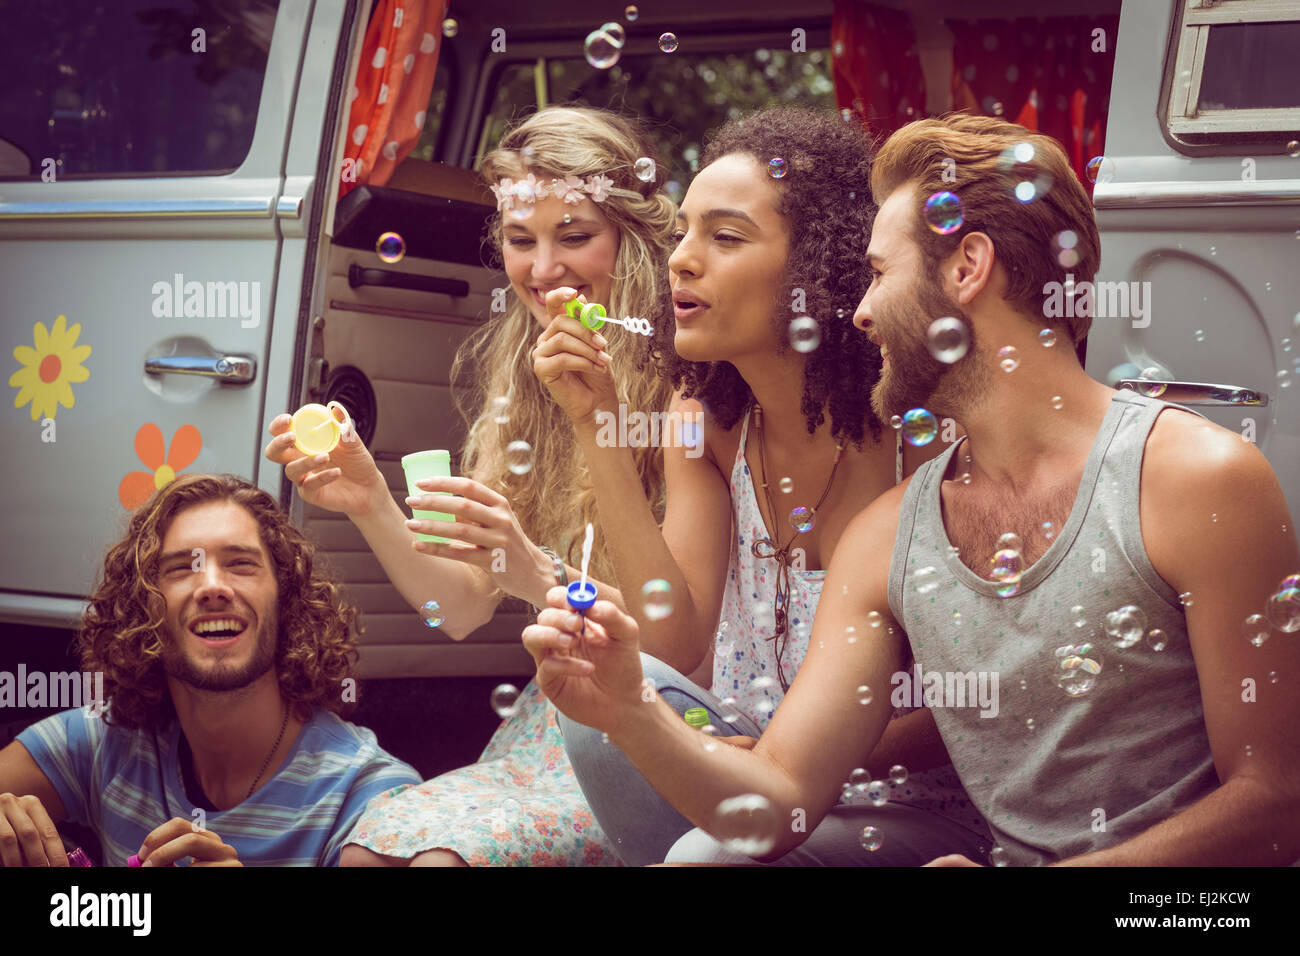 Hipsters blowing bubbles in camper van - Stock Image